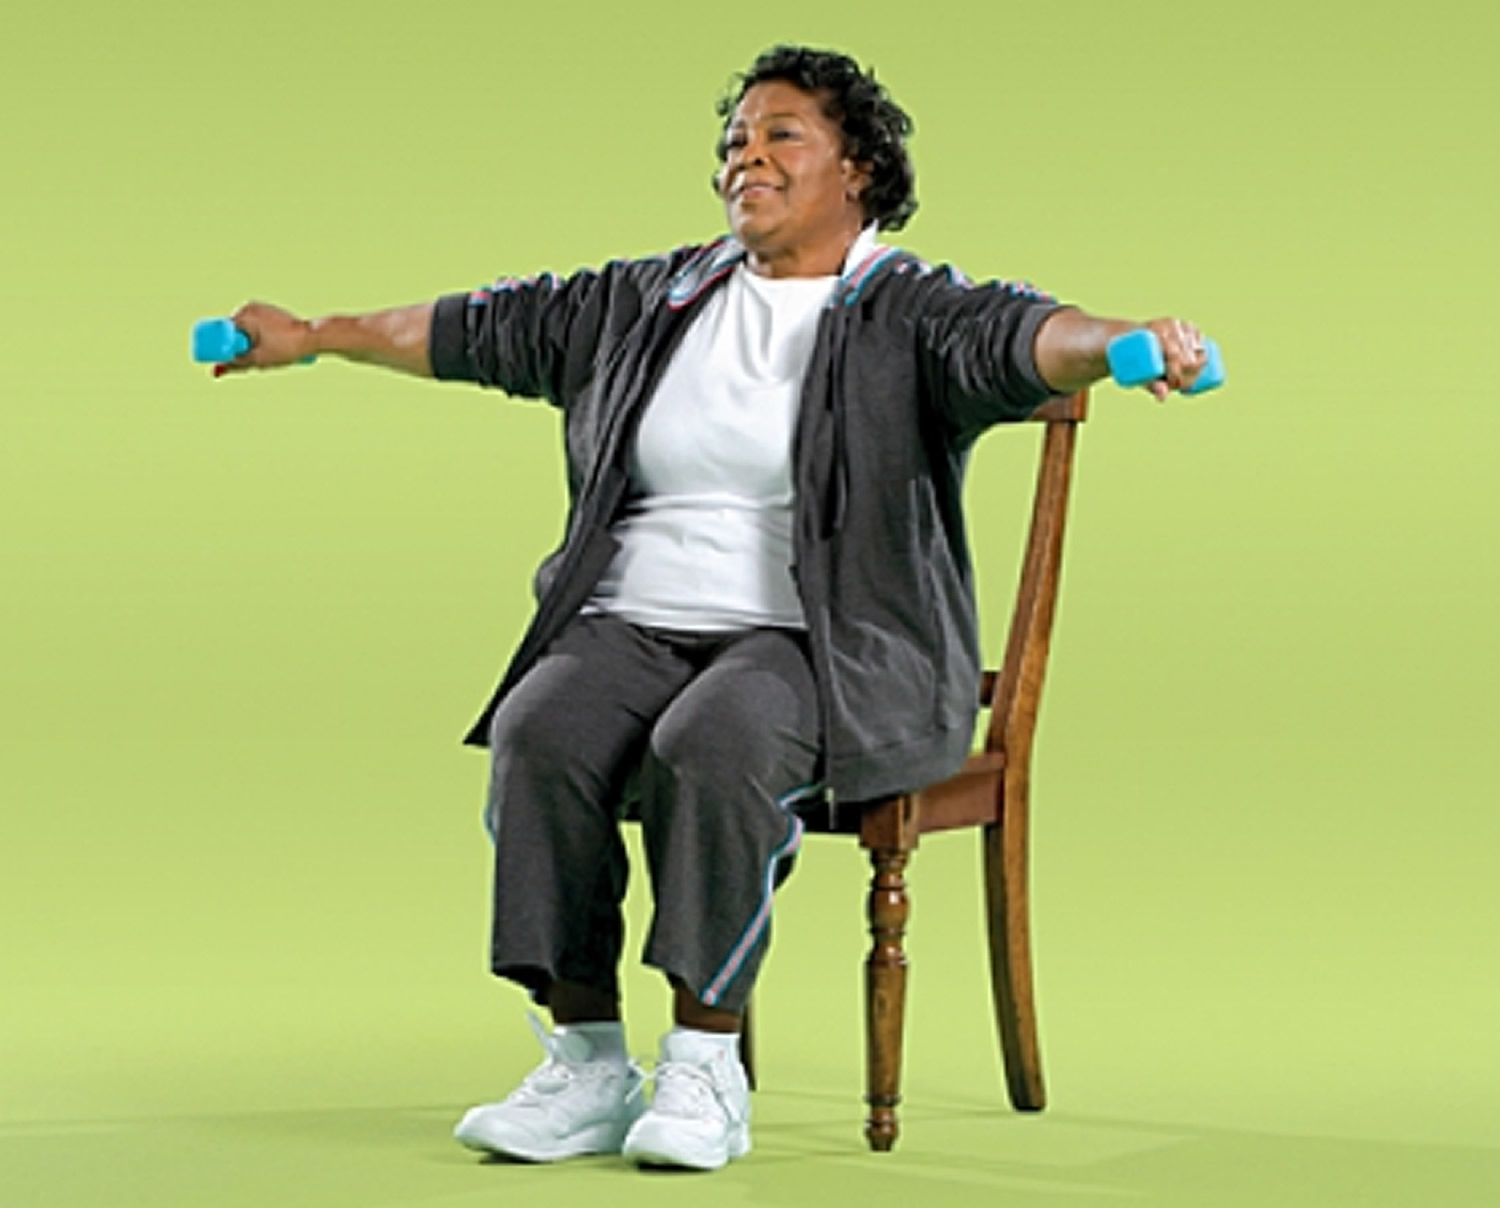 Side Arm Raise Strength Exercise for Seniors